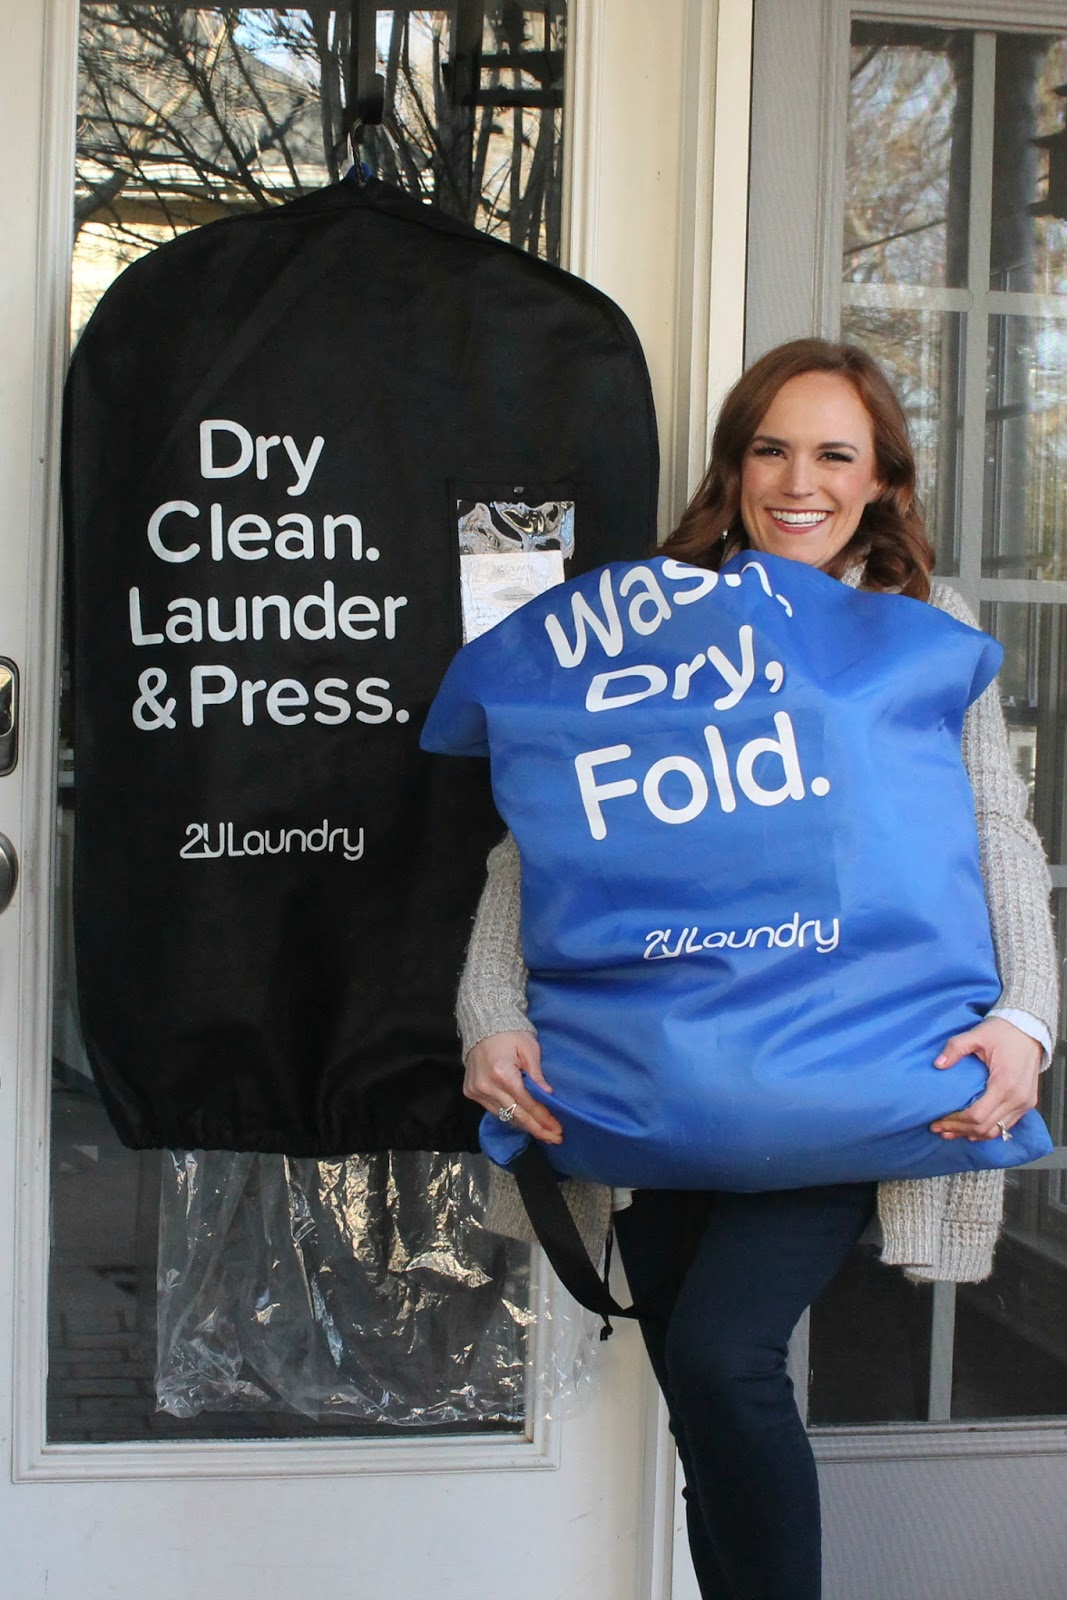 Conquering the Laundry Pile + Laundry Service Giveaway!